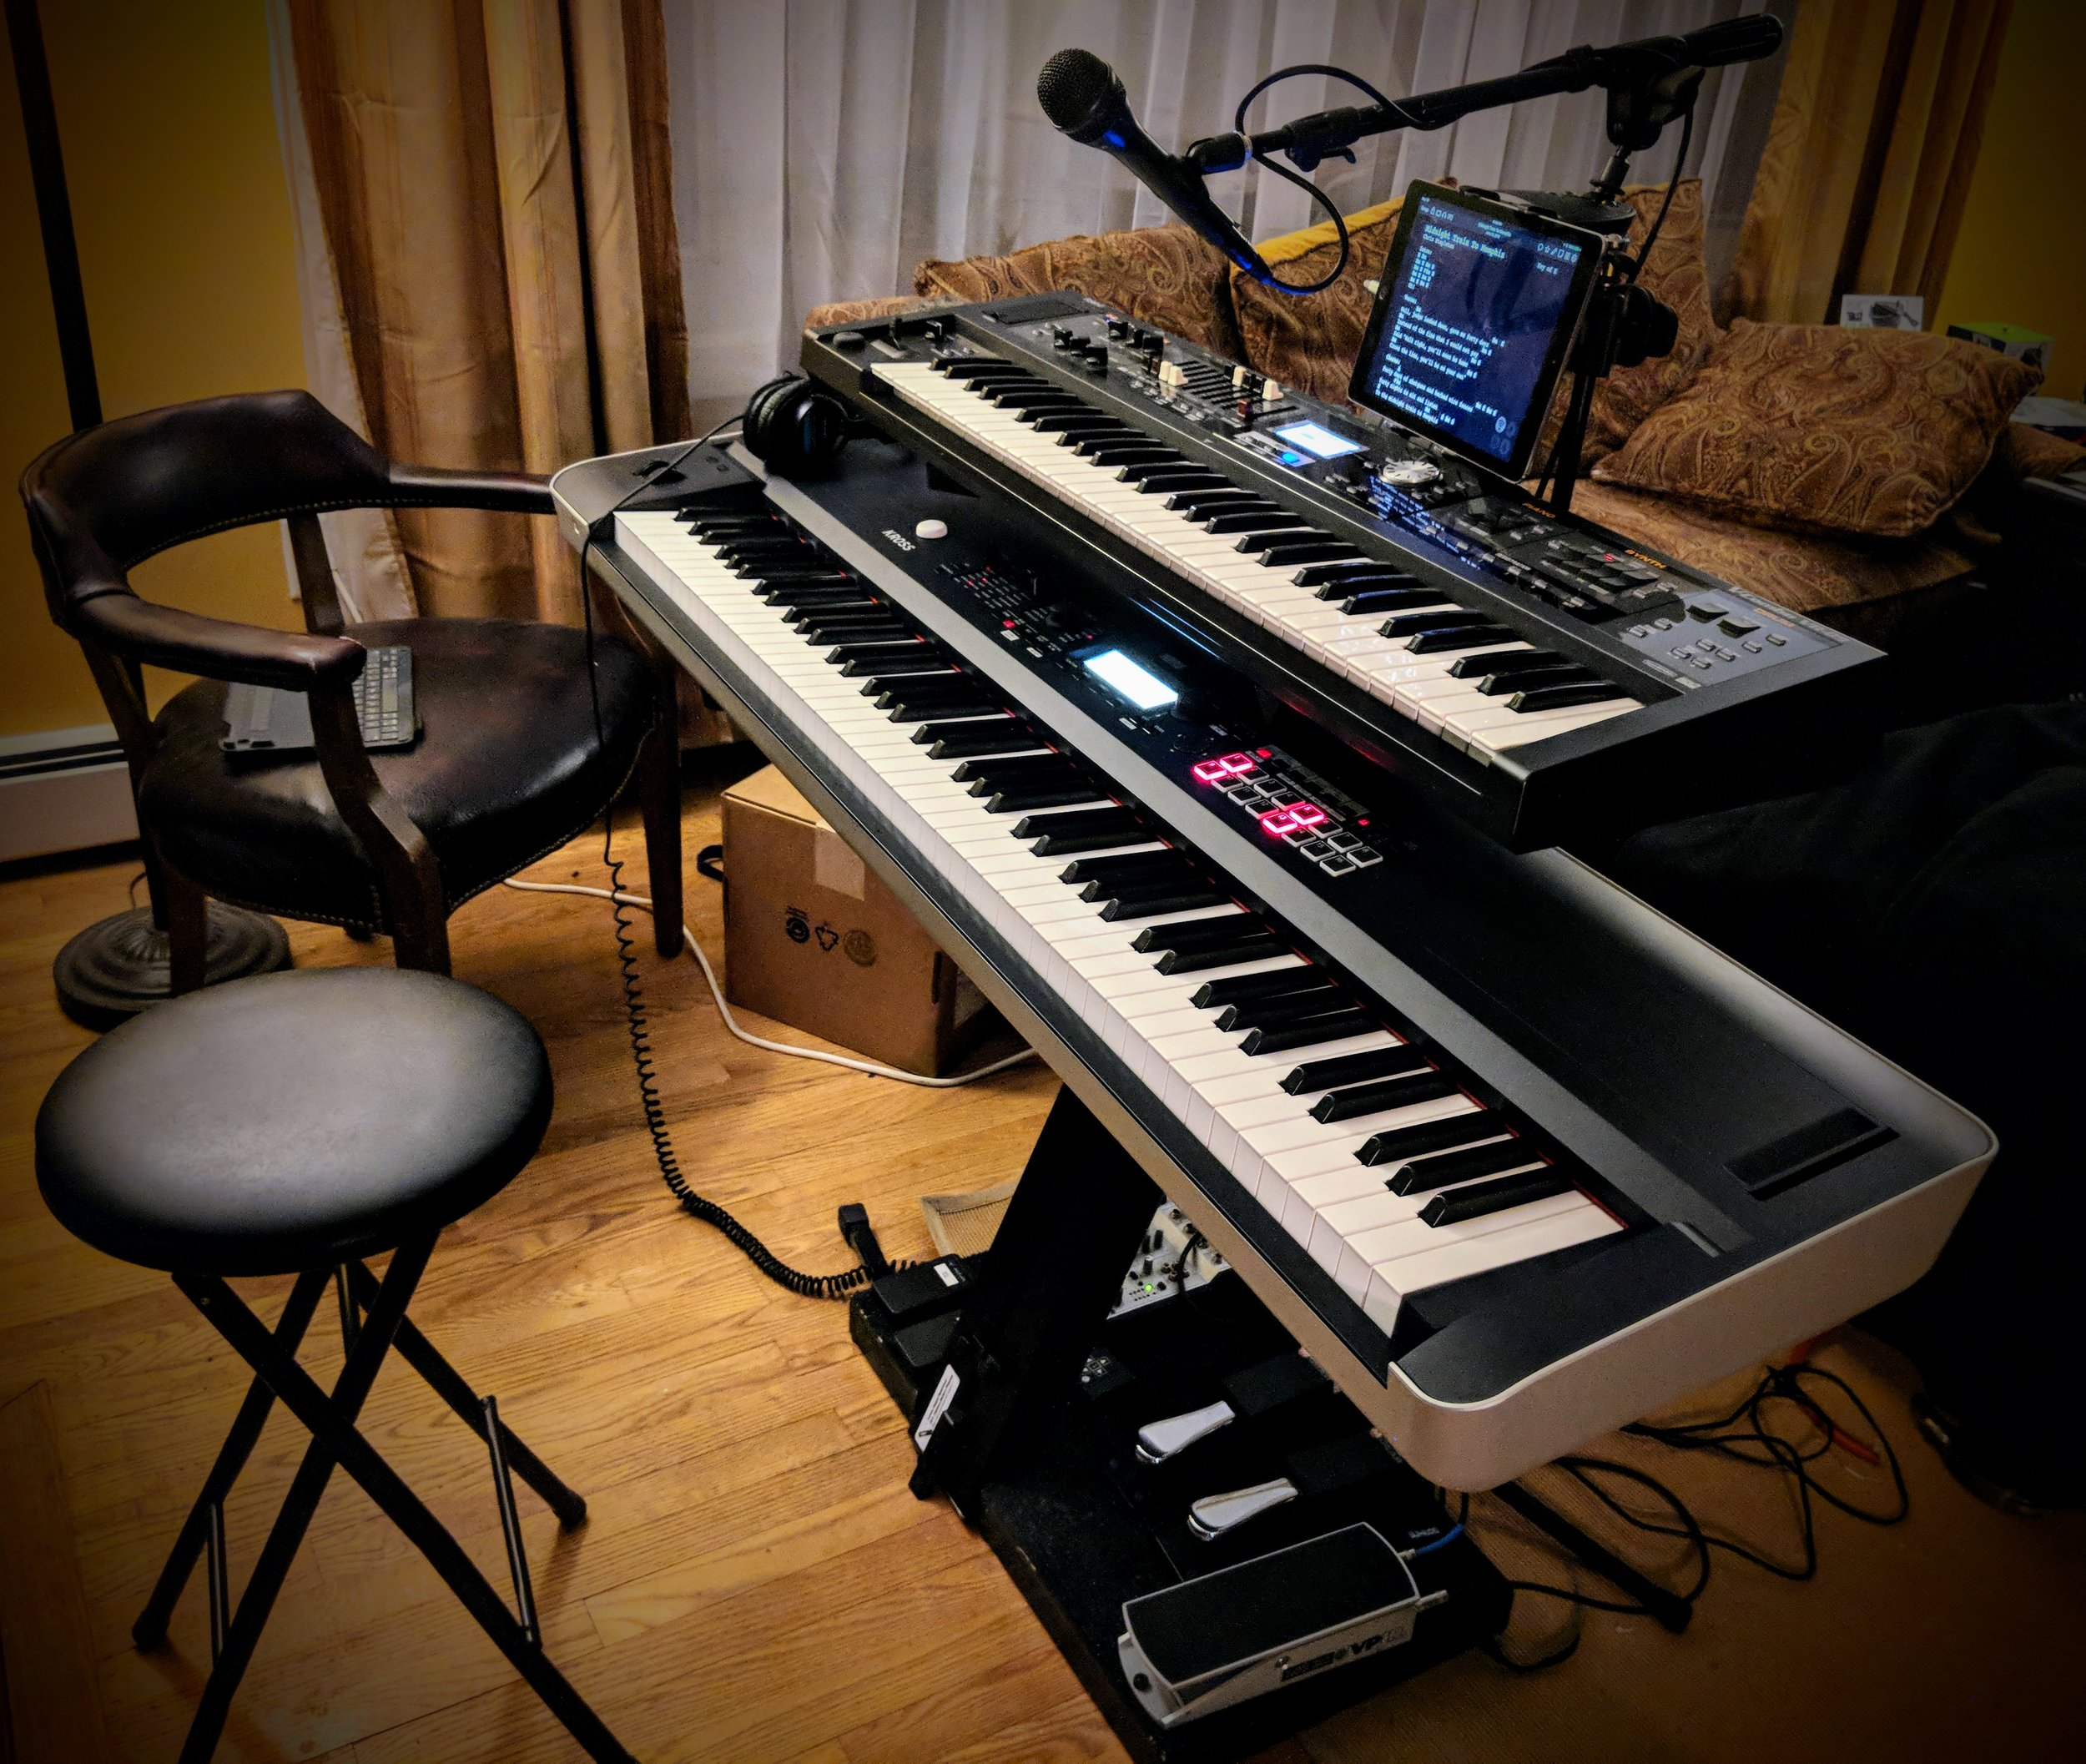 Here's the new rig. You'll recognize the Roland VR09 on top, and the new Korg Kross 2 88 is large and in charge on the bottom tier.